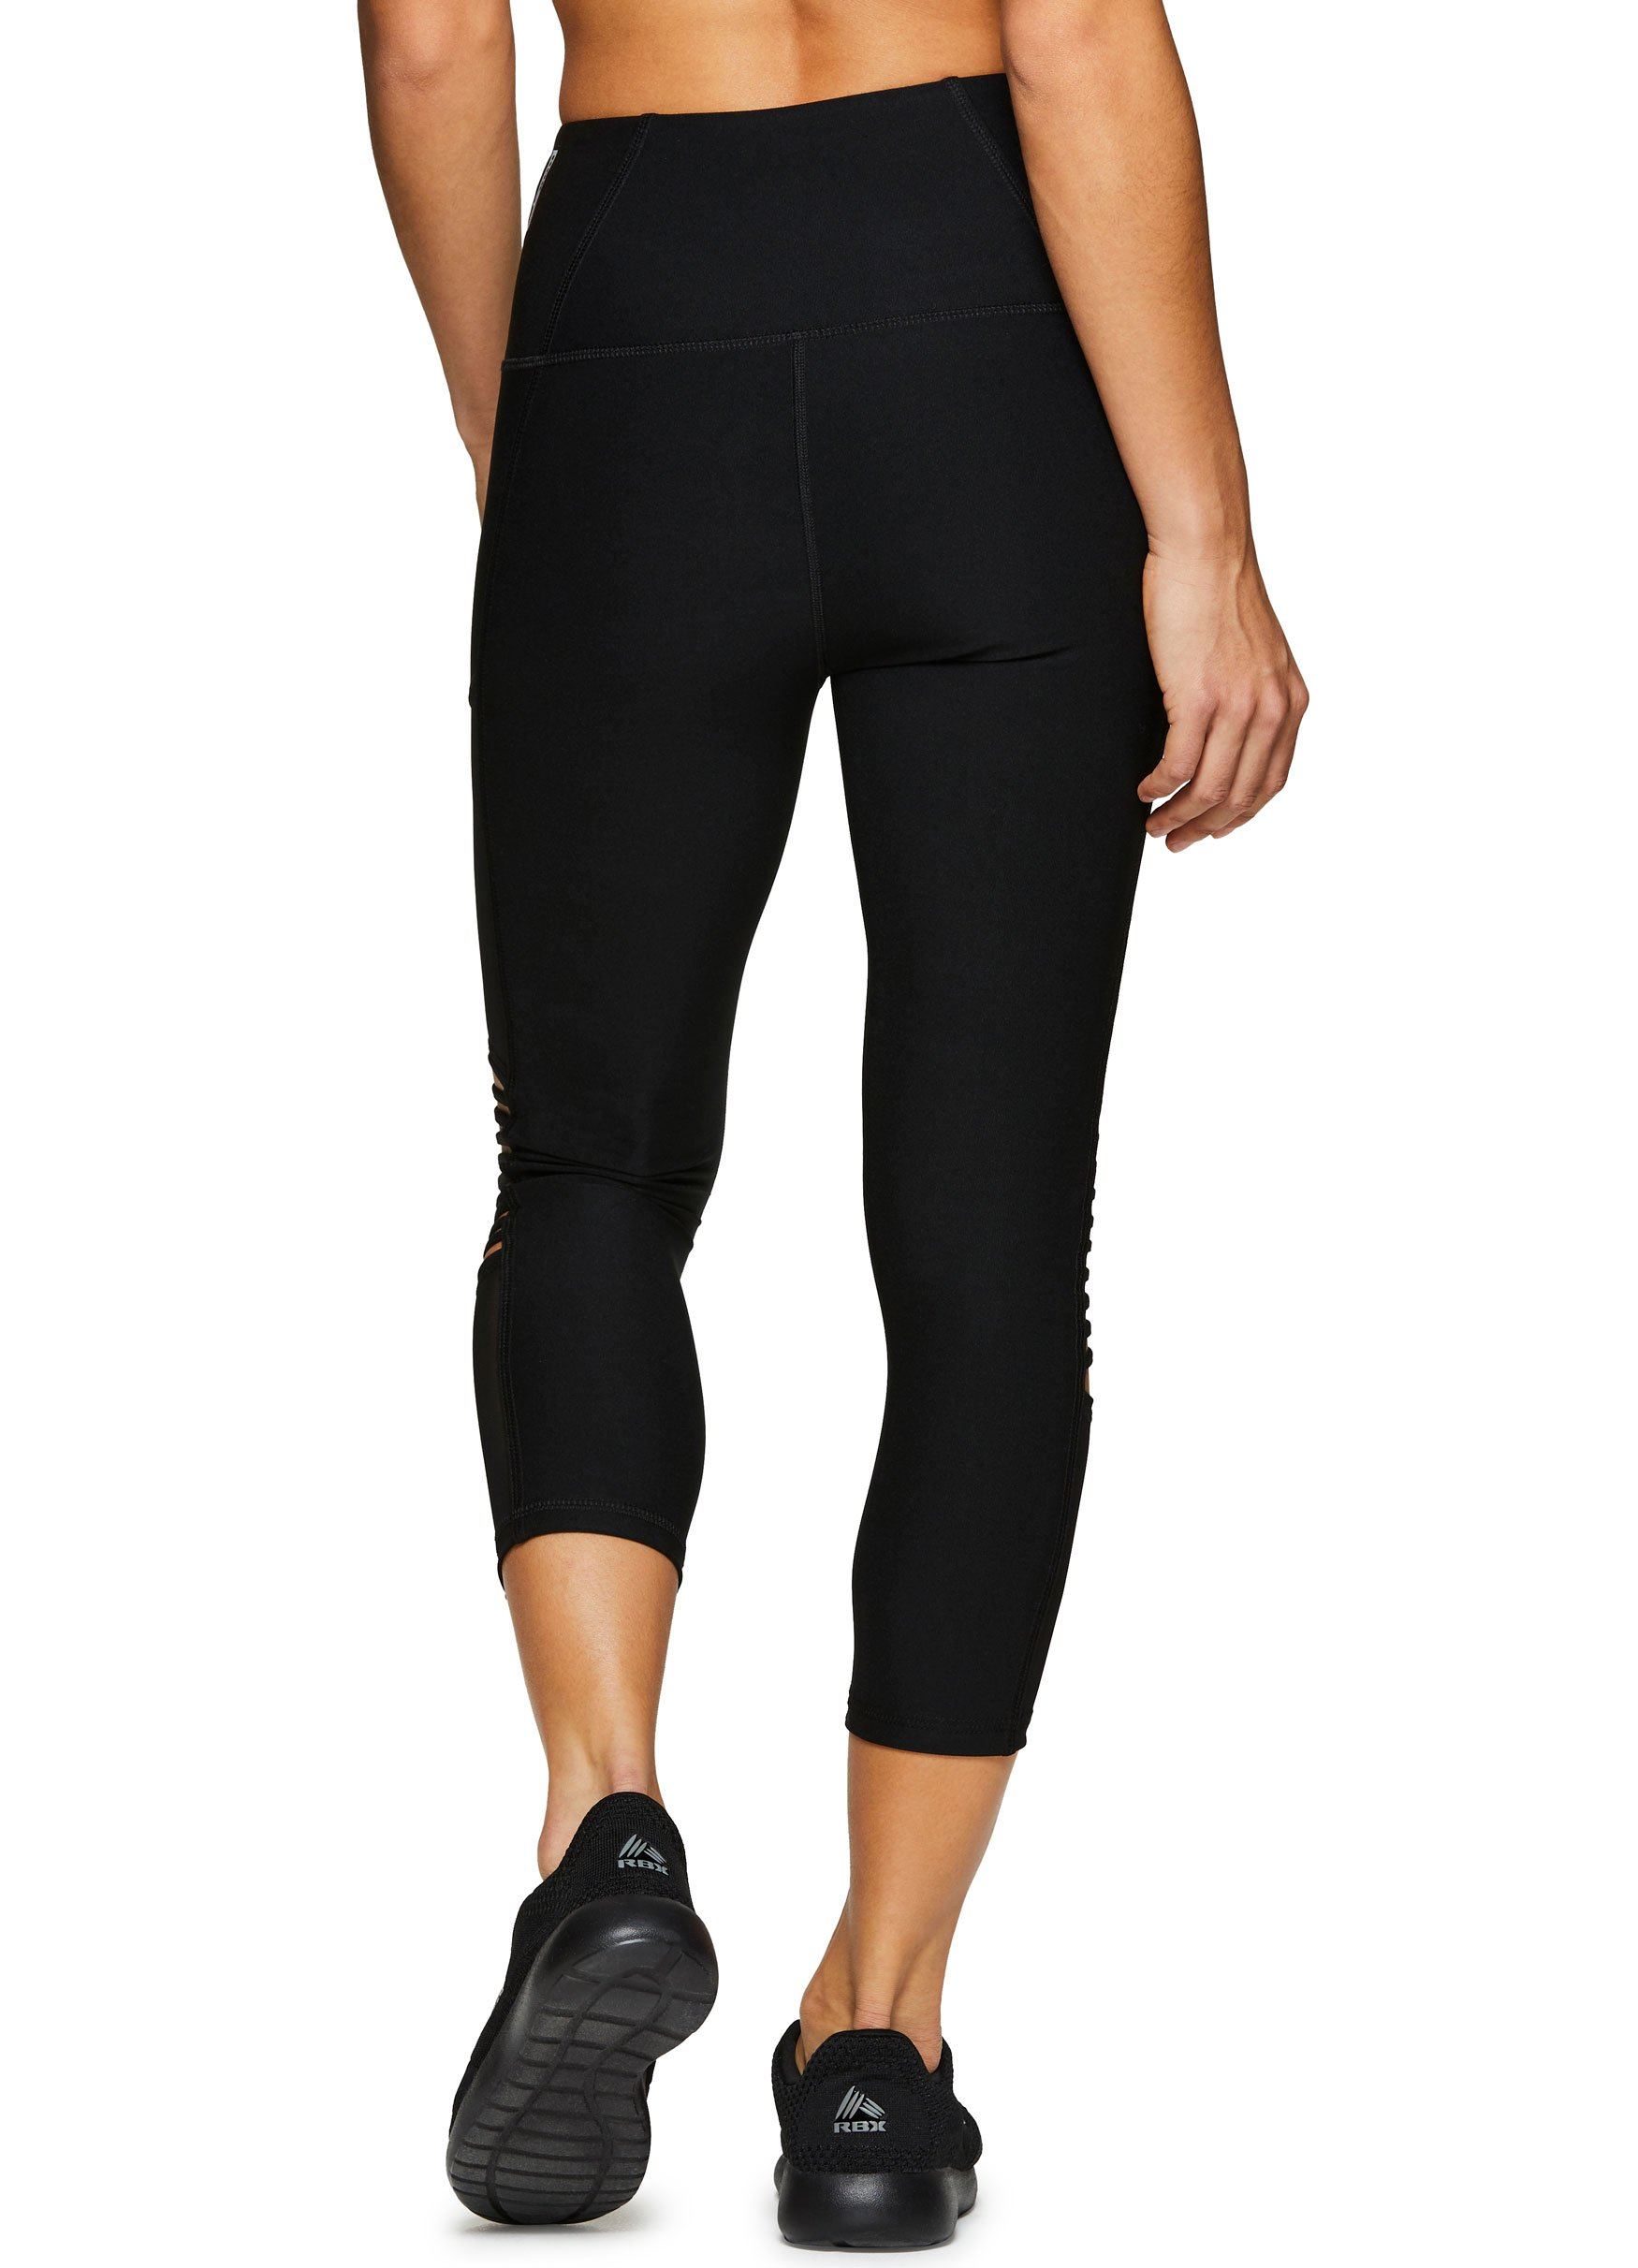 330d8a34f7d4e RBX Active Women's Workout Running Yoga Leggings Strap Black M - ACR6494A-M  < Clothing < Sports & Outdoors - tibs